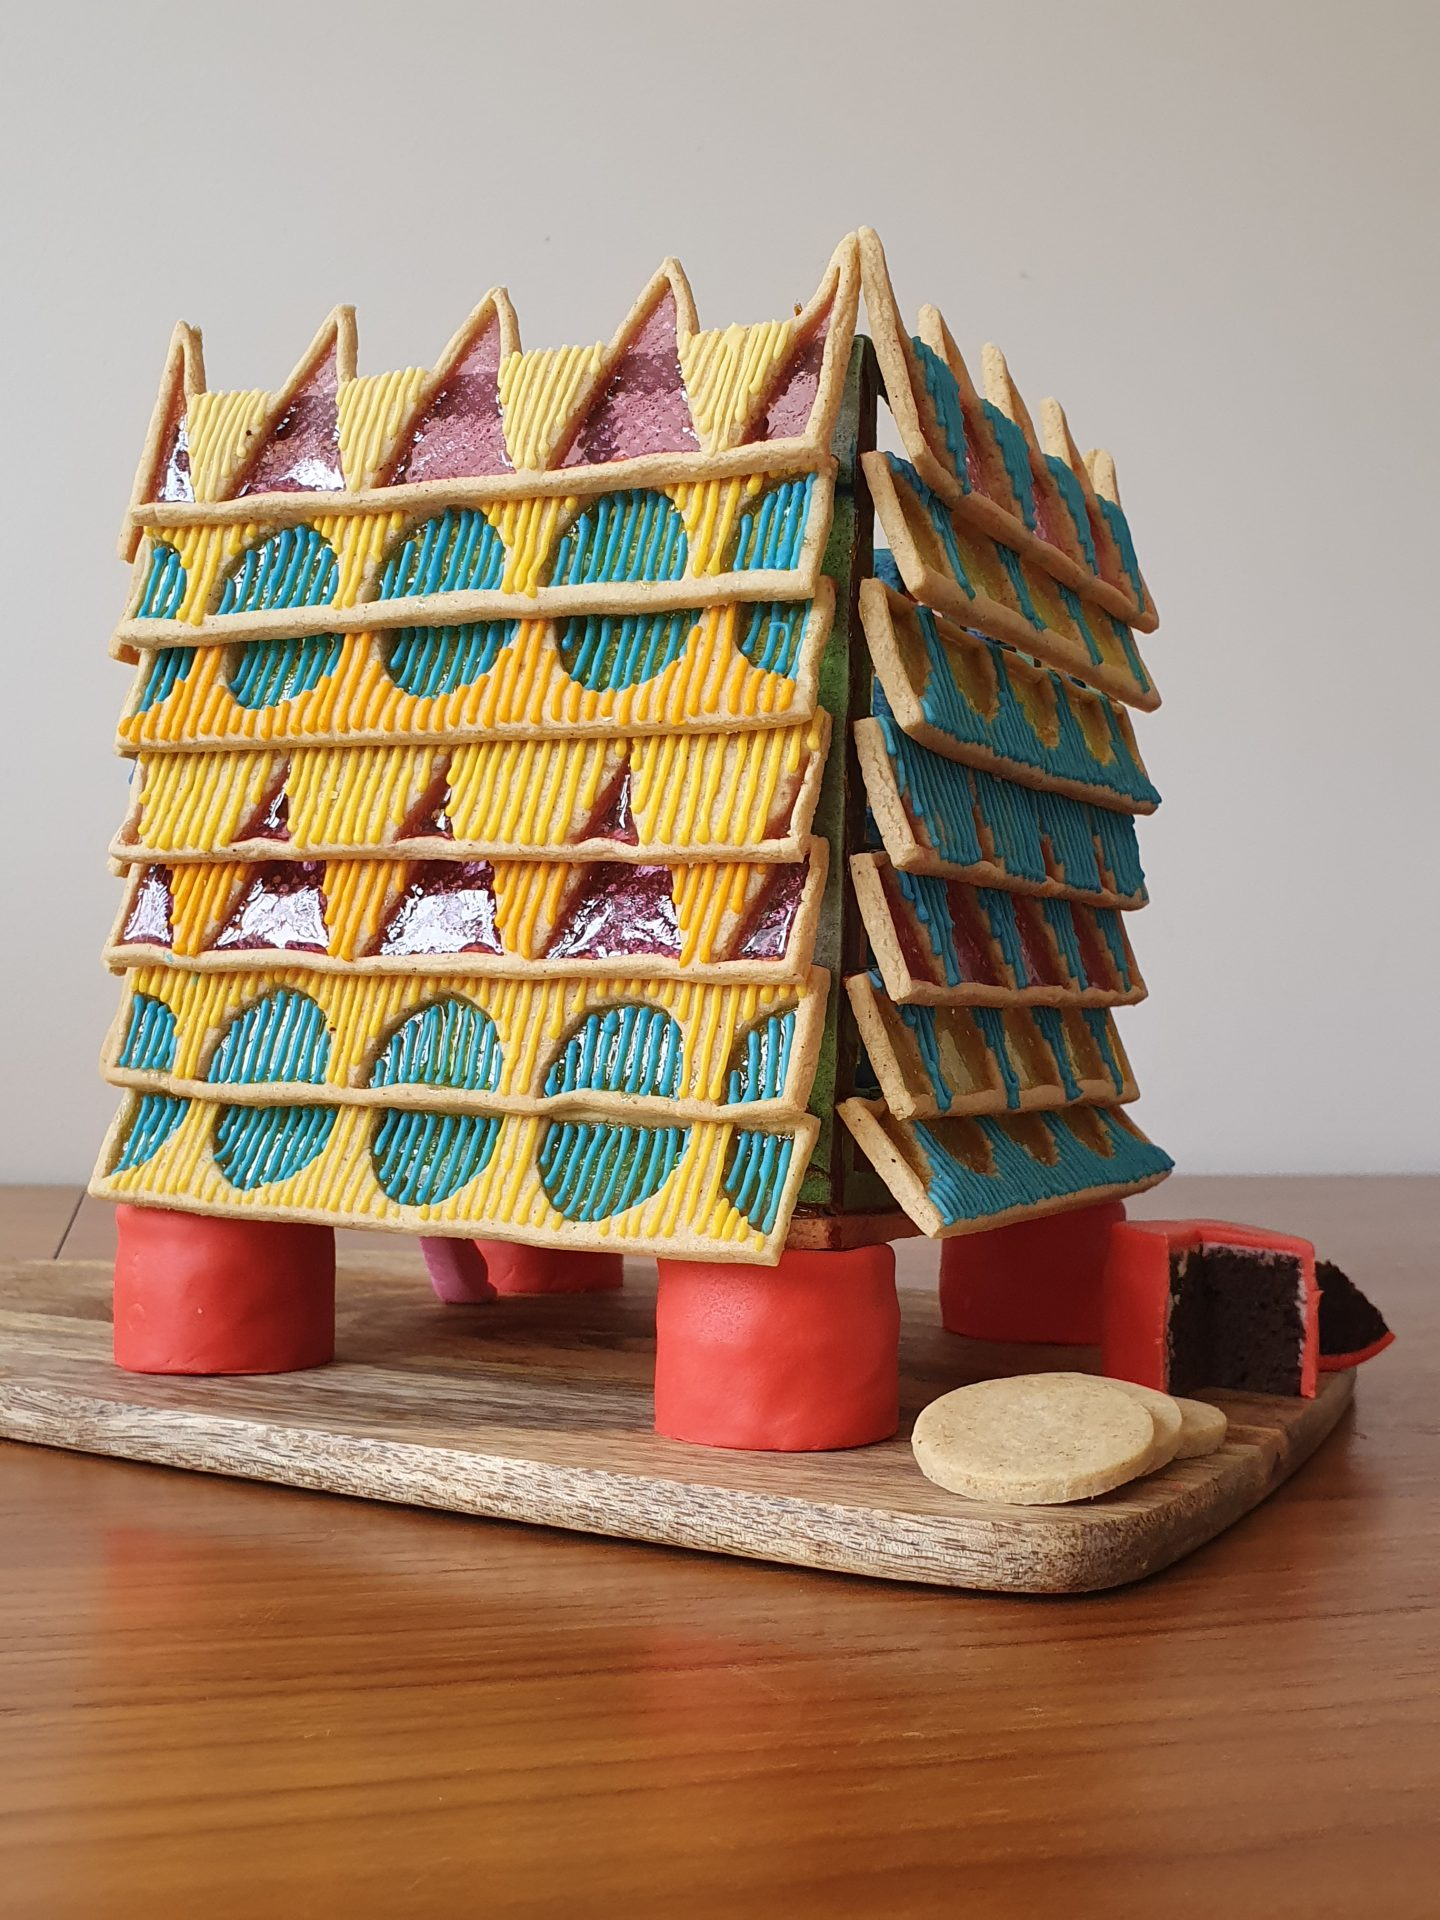 Architecture Bake Off – Overall Winner Announced